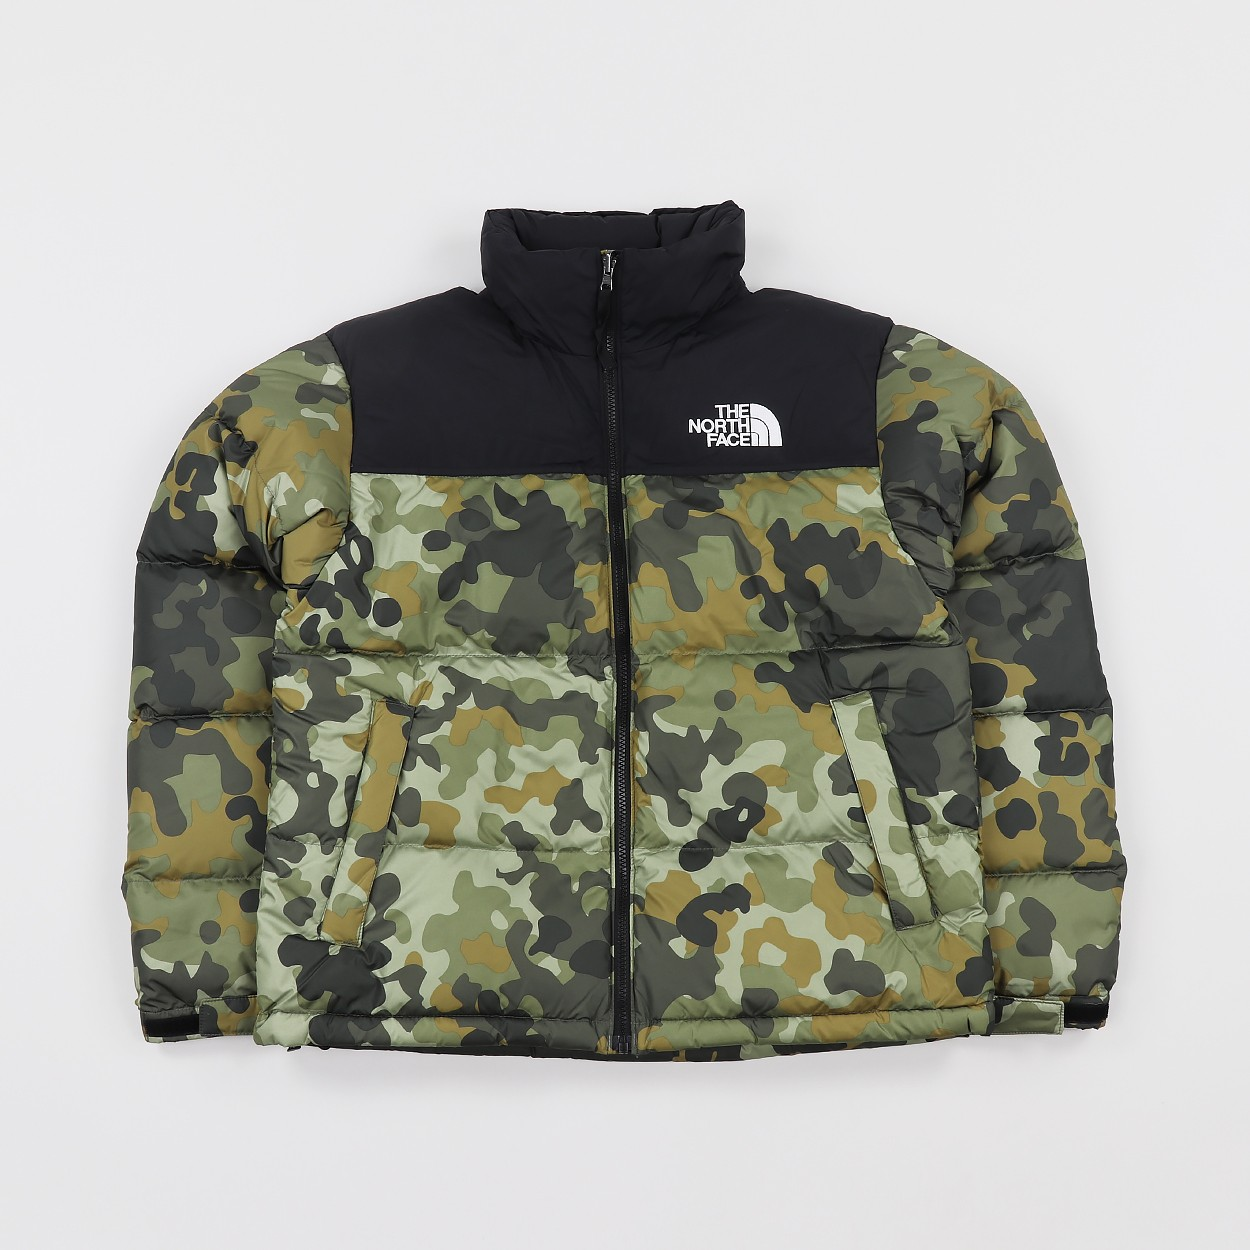 North face nuptse jacket, camo, brand new, size    - Depop